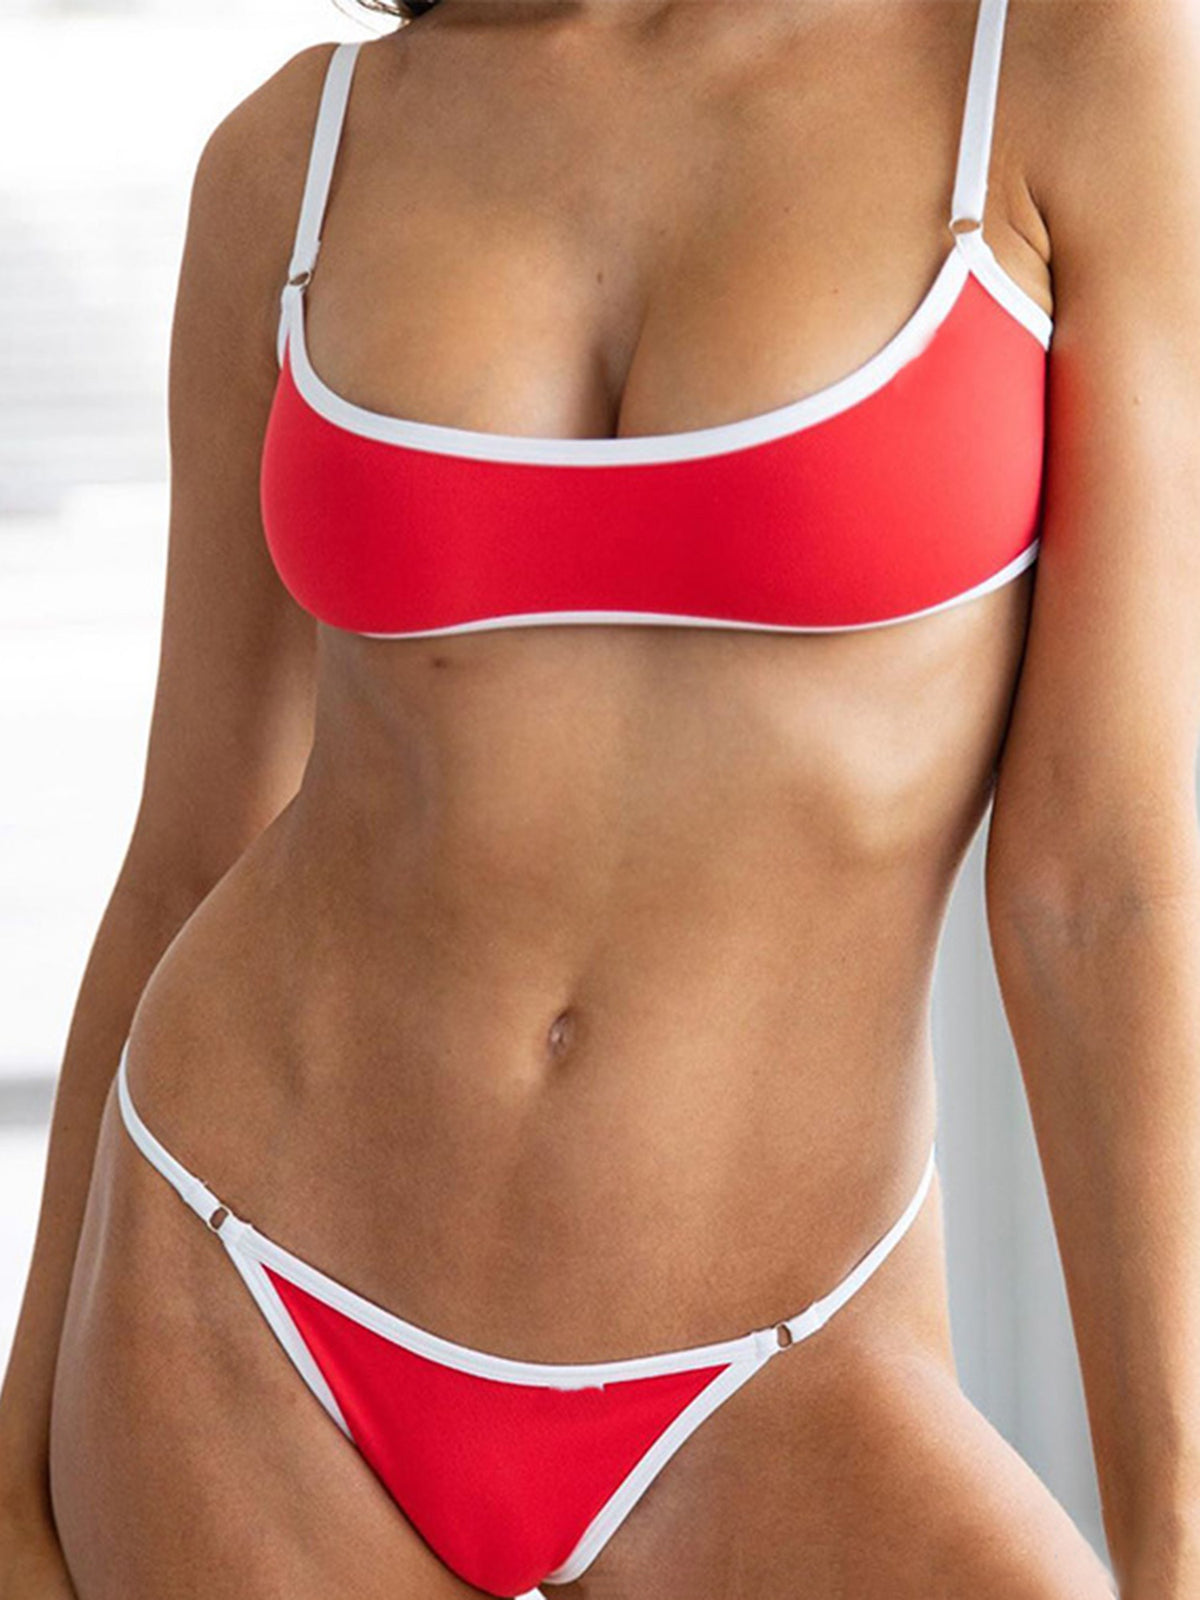 Solid Color Trimmed Crop Top Bikini Swimsuit - worthtryit.com